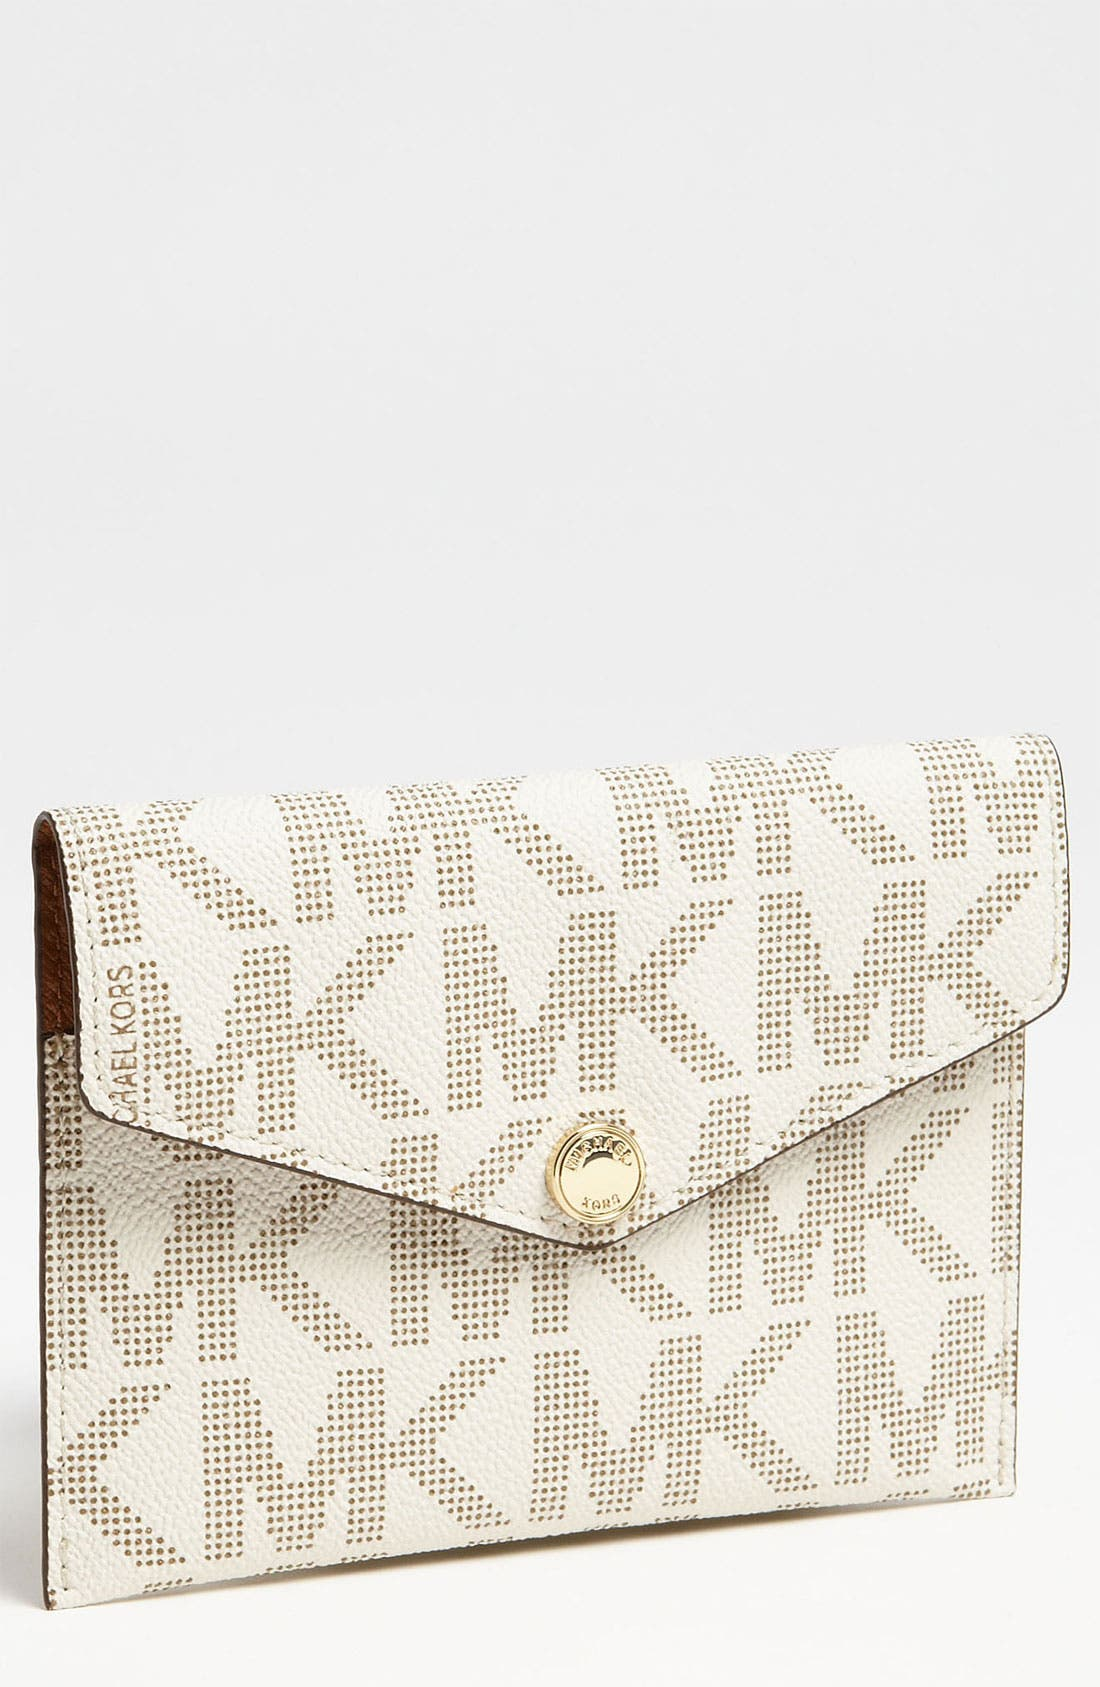 Alternate Image 1 Selected - MICHAEL Michael Kors 'Signature' Passport Case